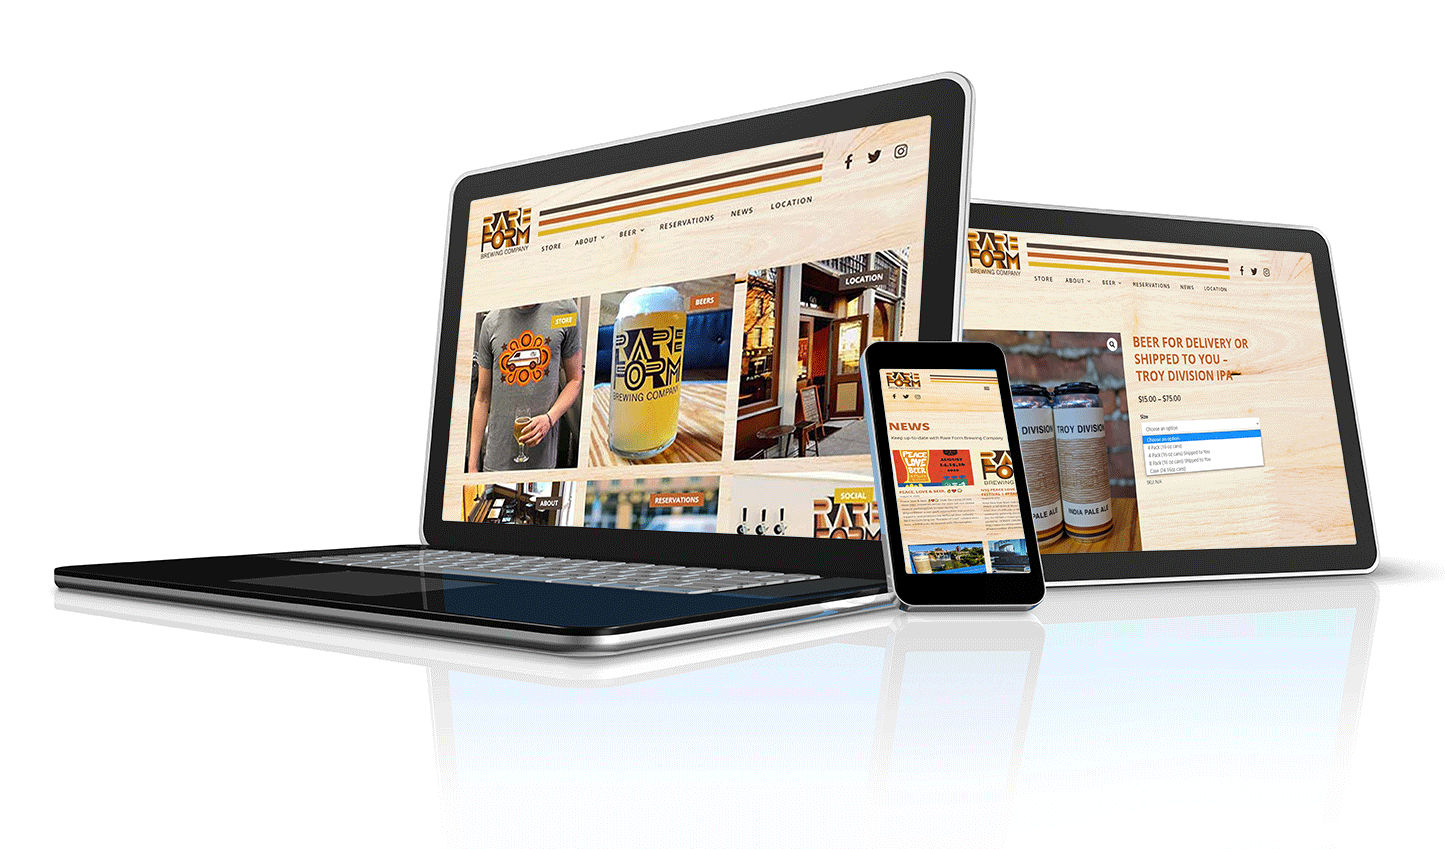 Rare Form Brewing example of mobile friendly brewery website design displayed on all devices